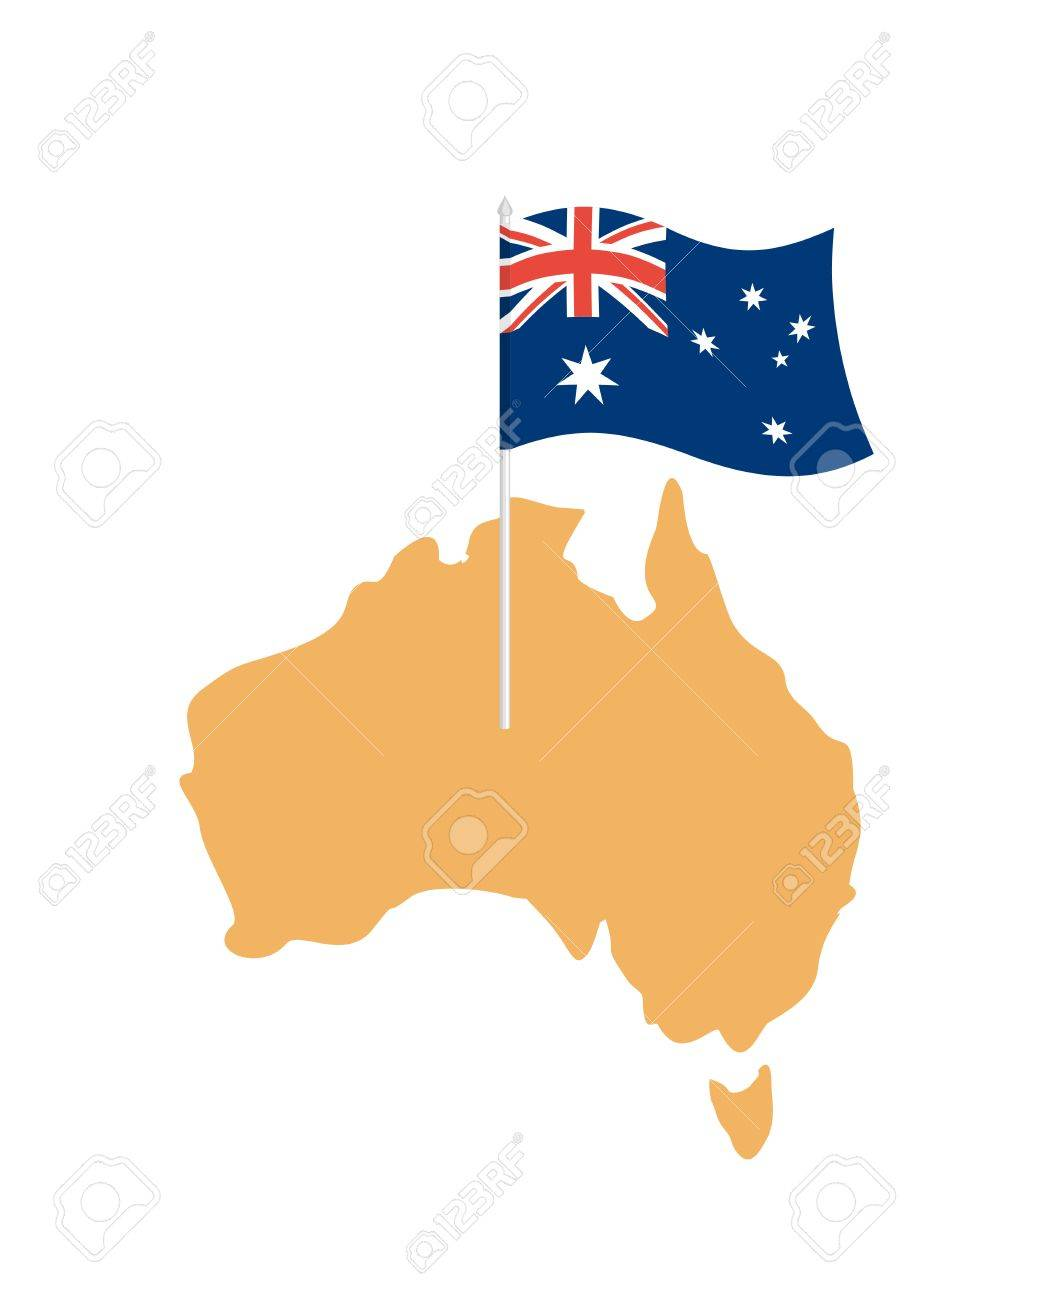 australia map and flag australian resource and land area state patriotic sign stock vector